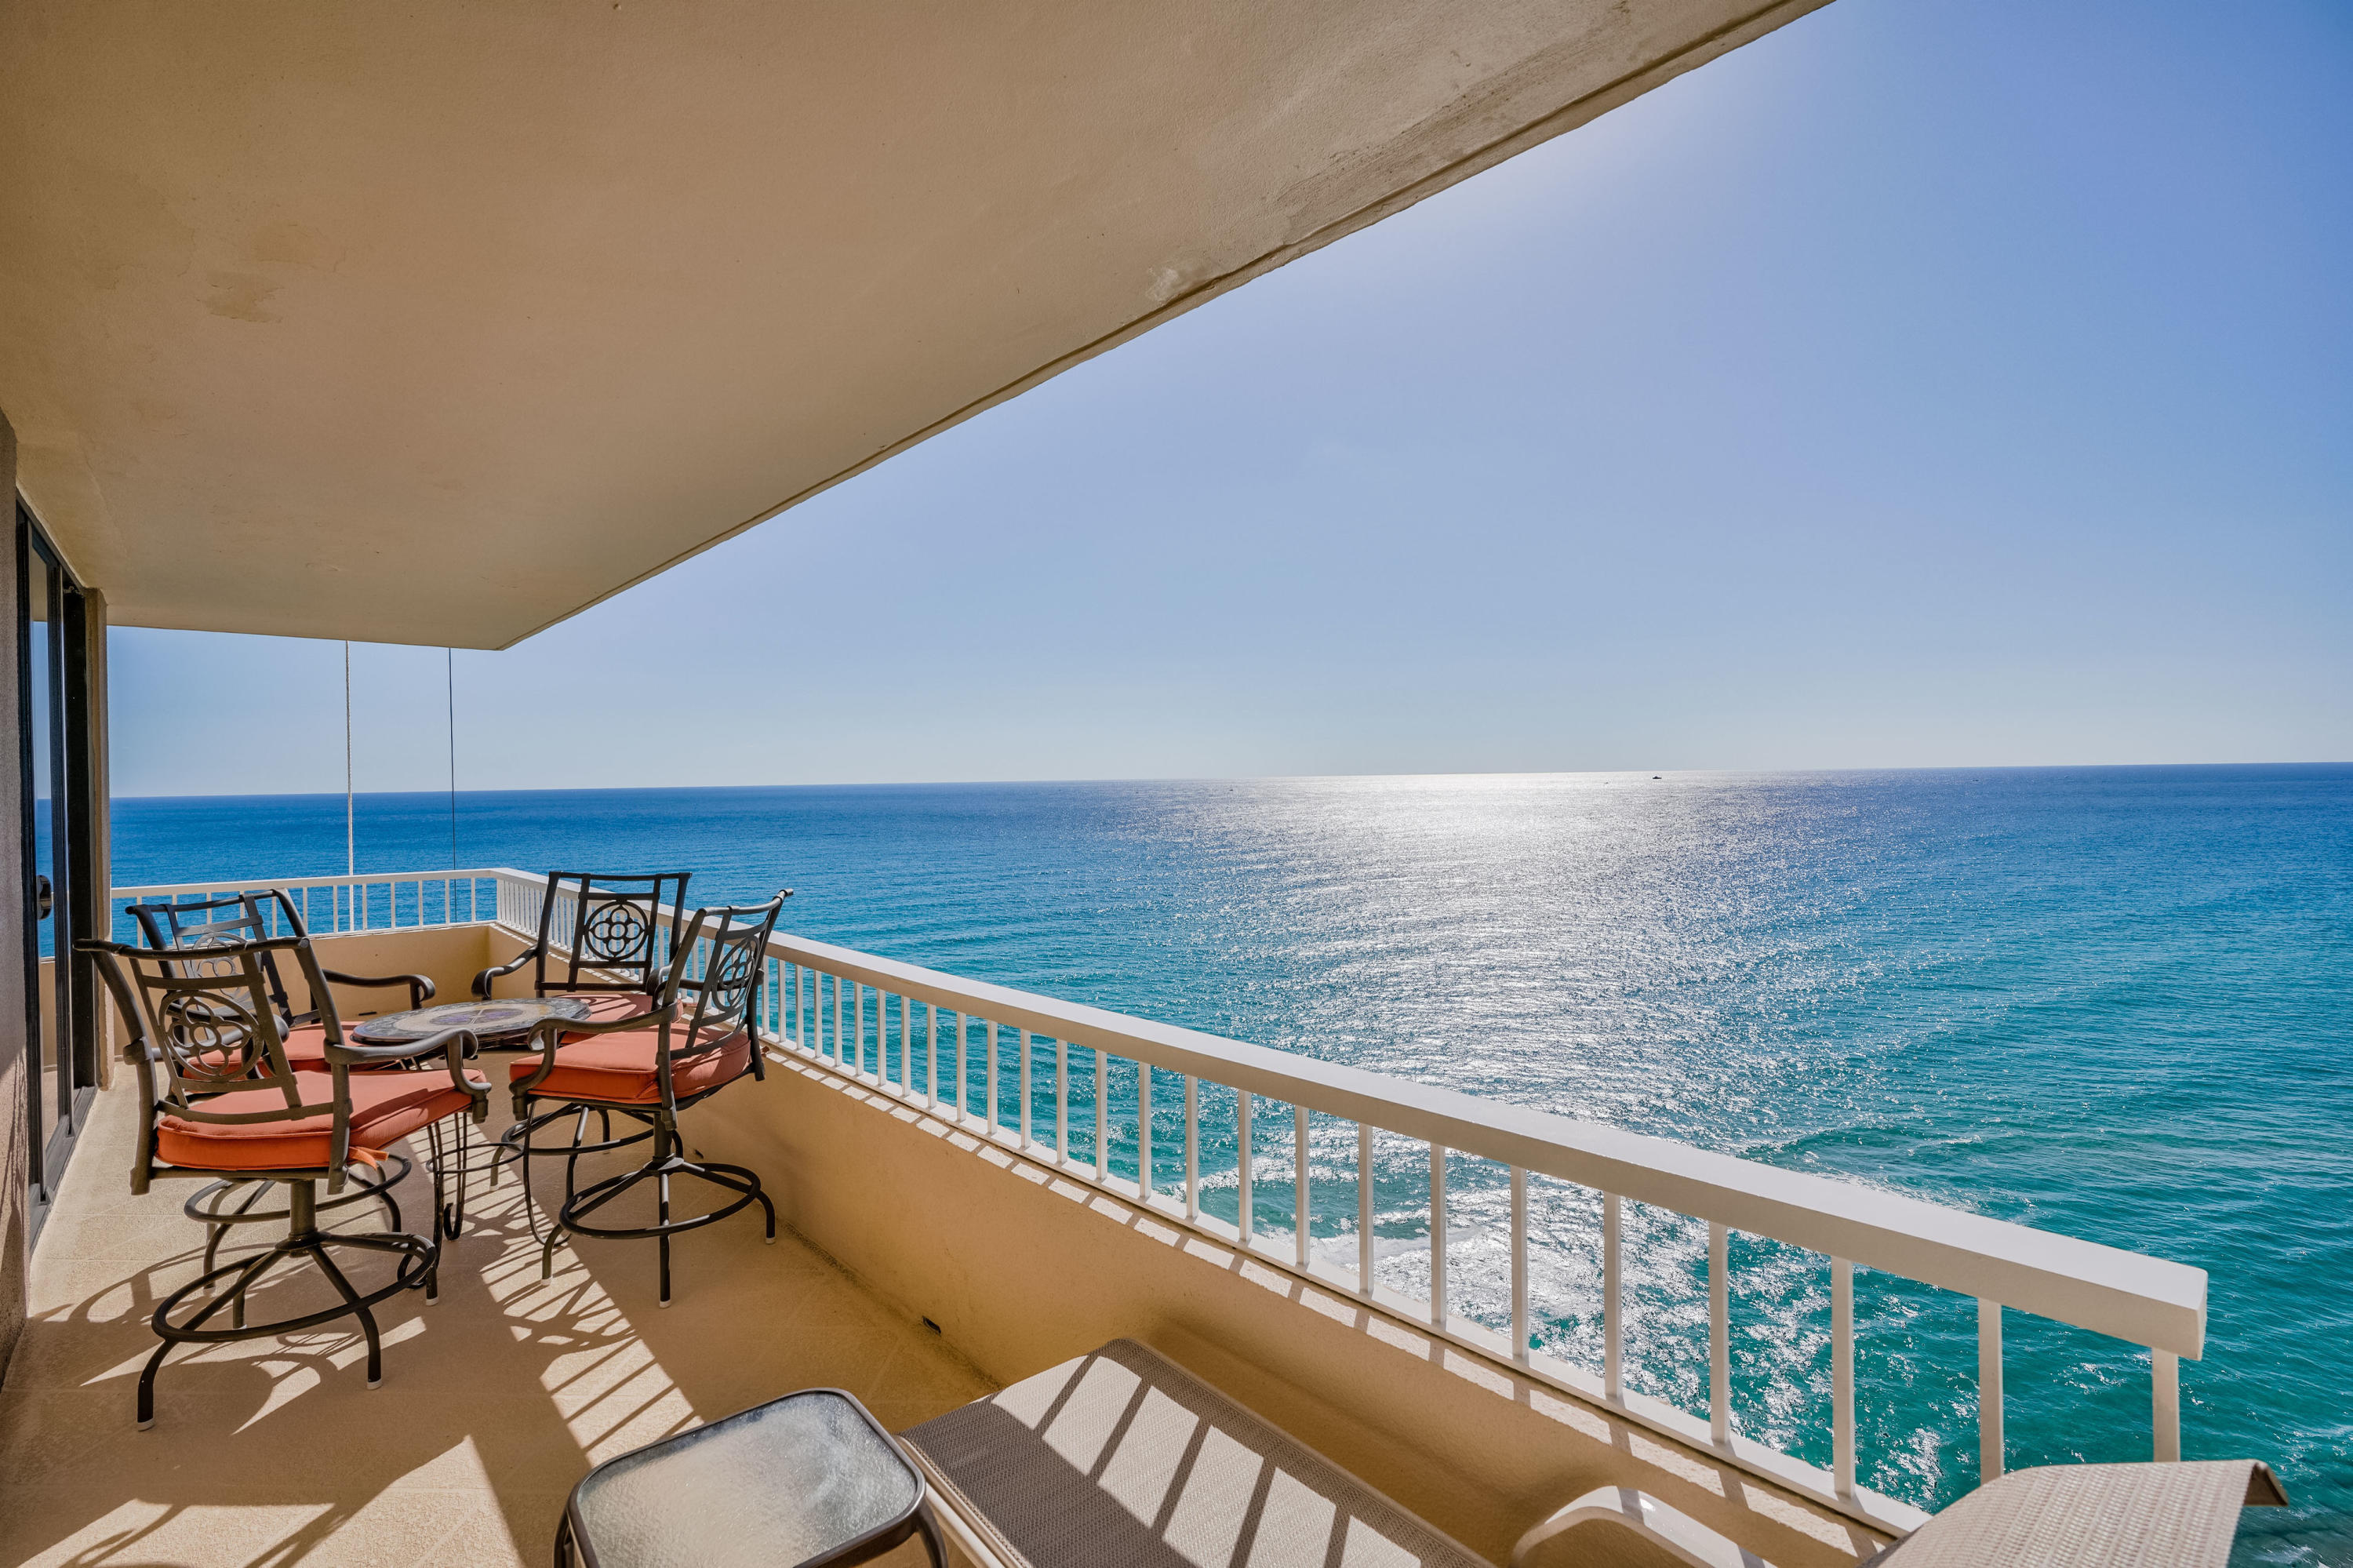 New Home for sale at 5510 Ocean Drive in Singer Island